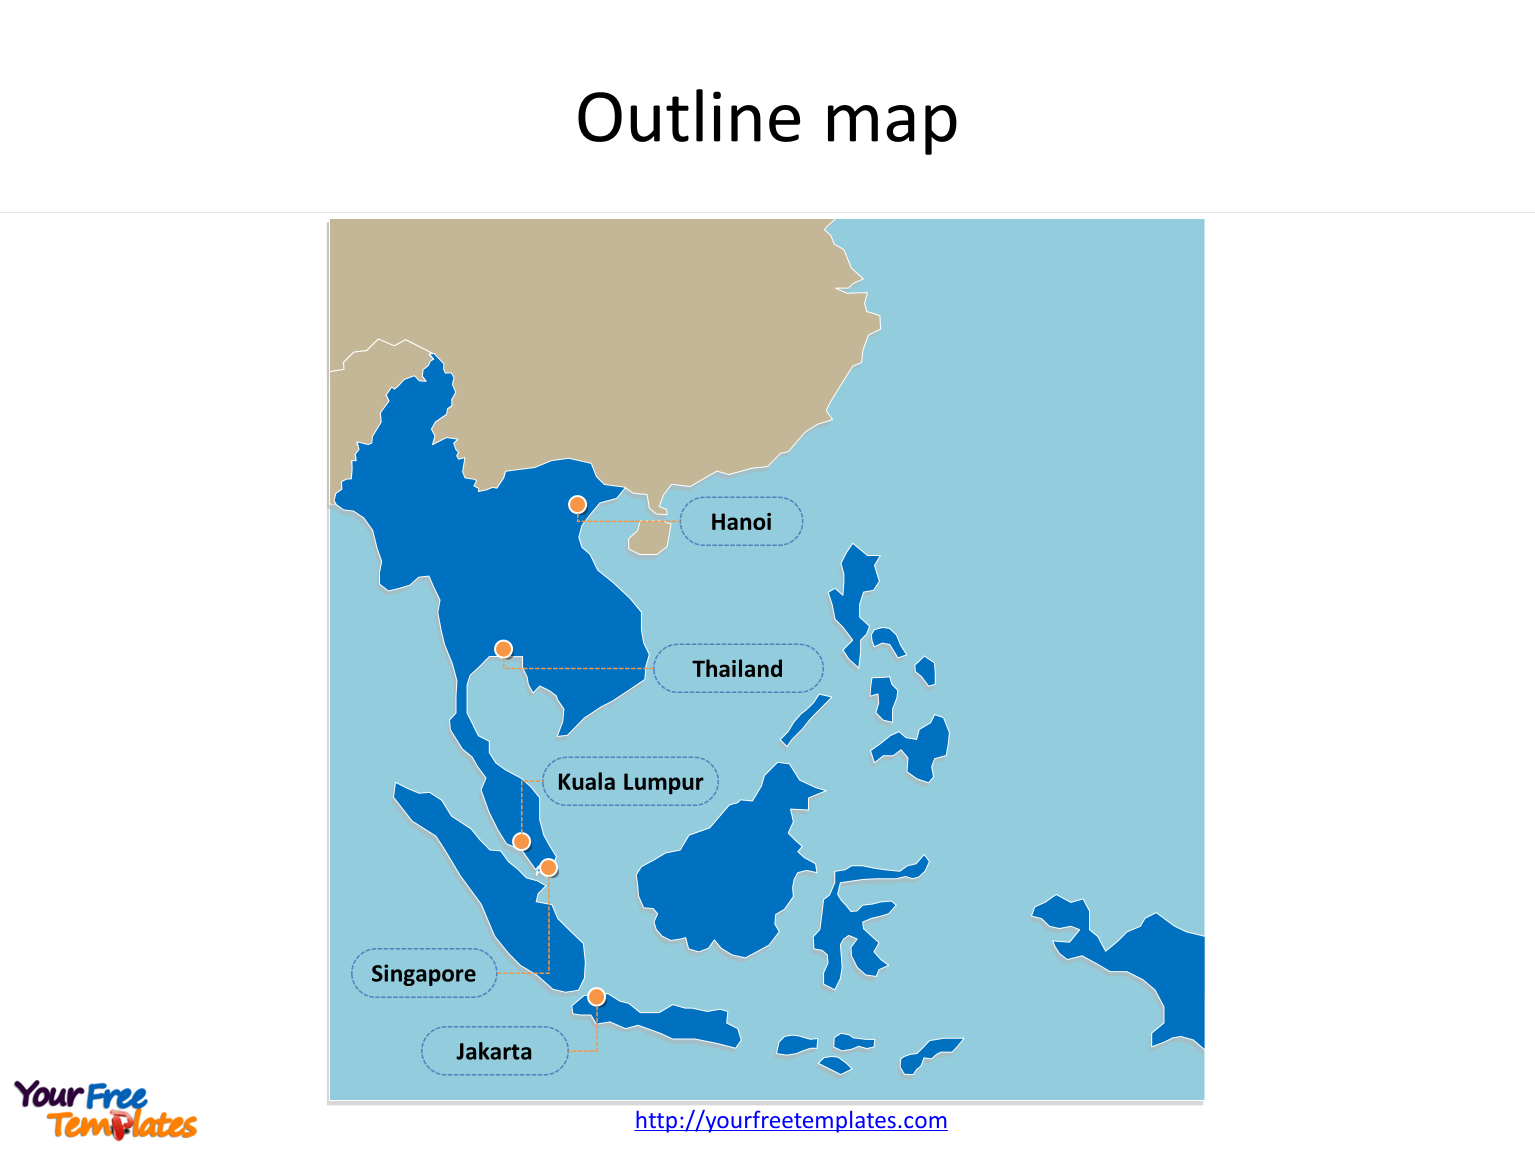 Map of Southeast Asia with outline and cities labeled on the Southeast Asia map free templates